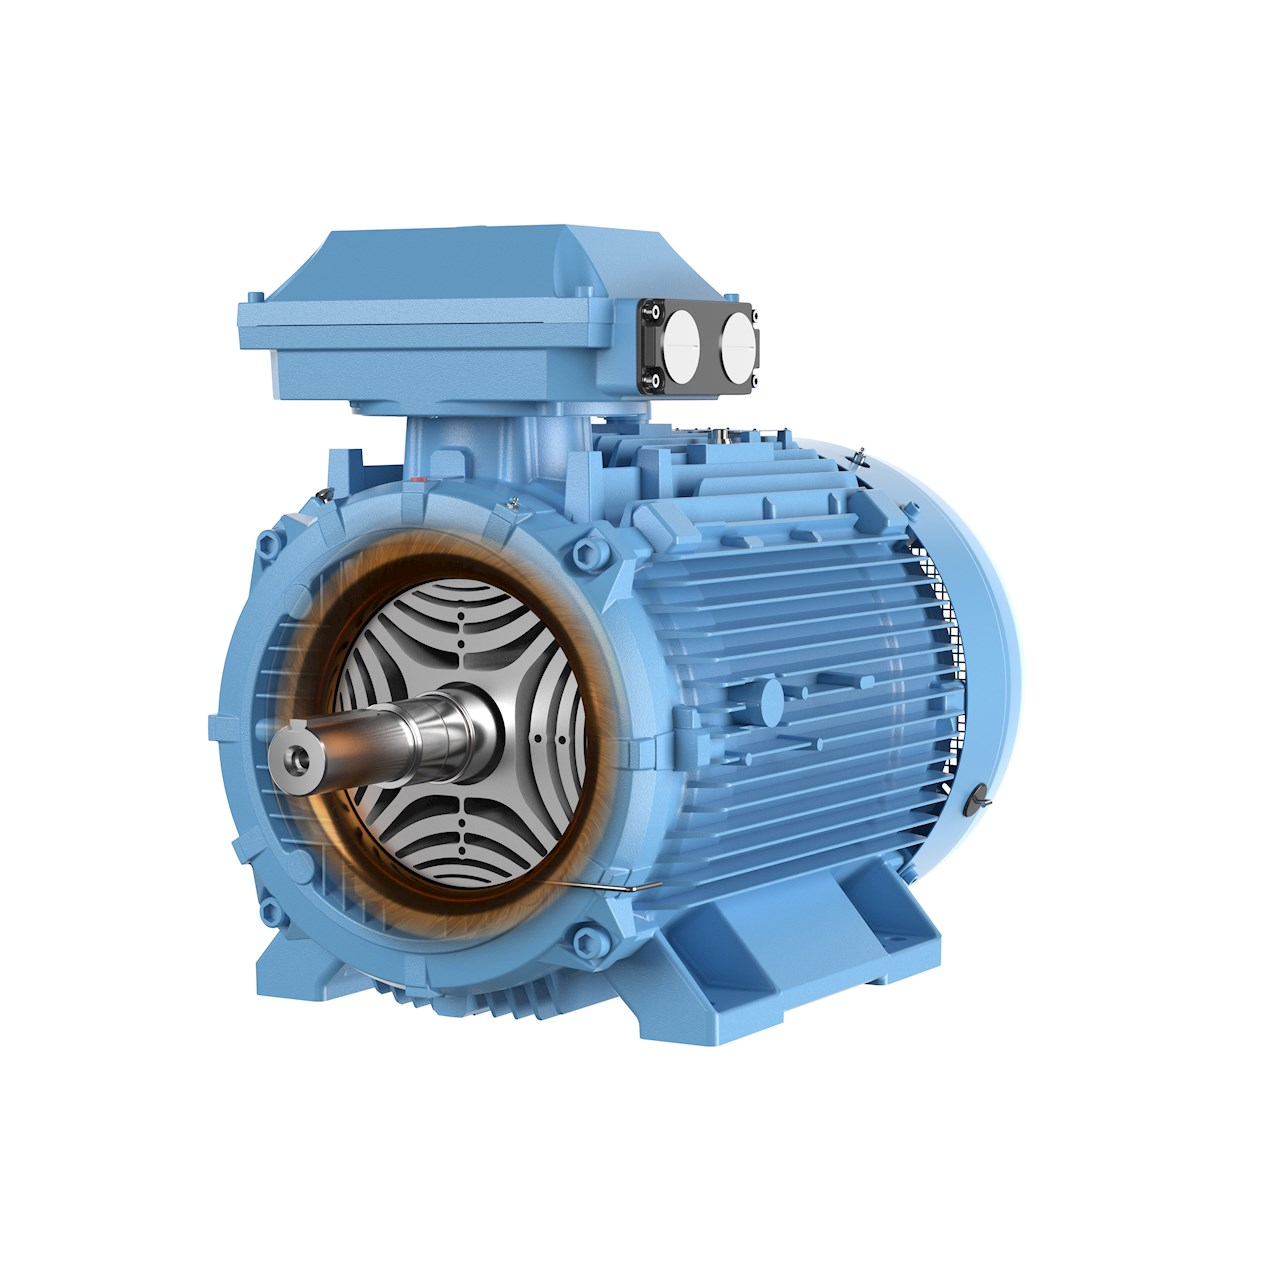 ABB's SynRM motor in the IE5 ultra-premium energy efficiency class